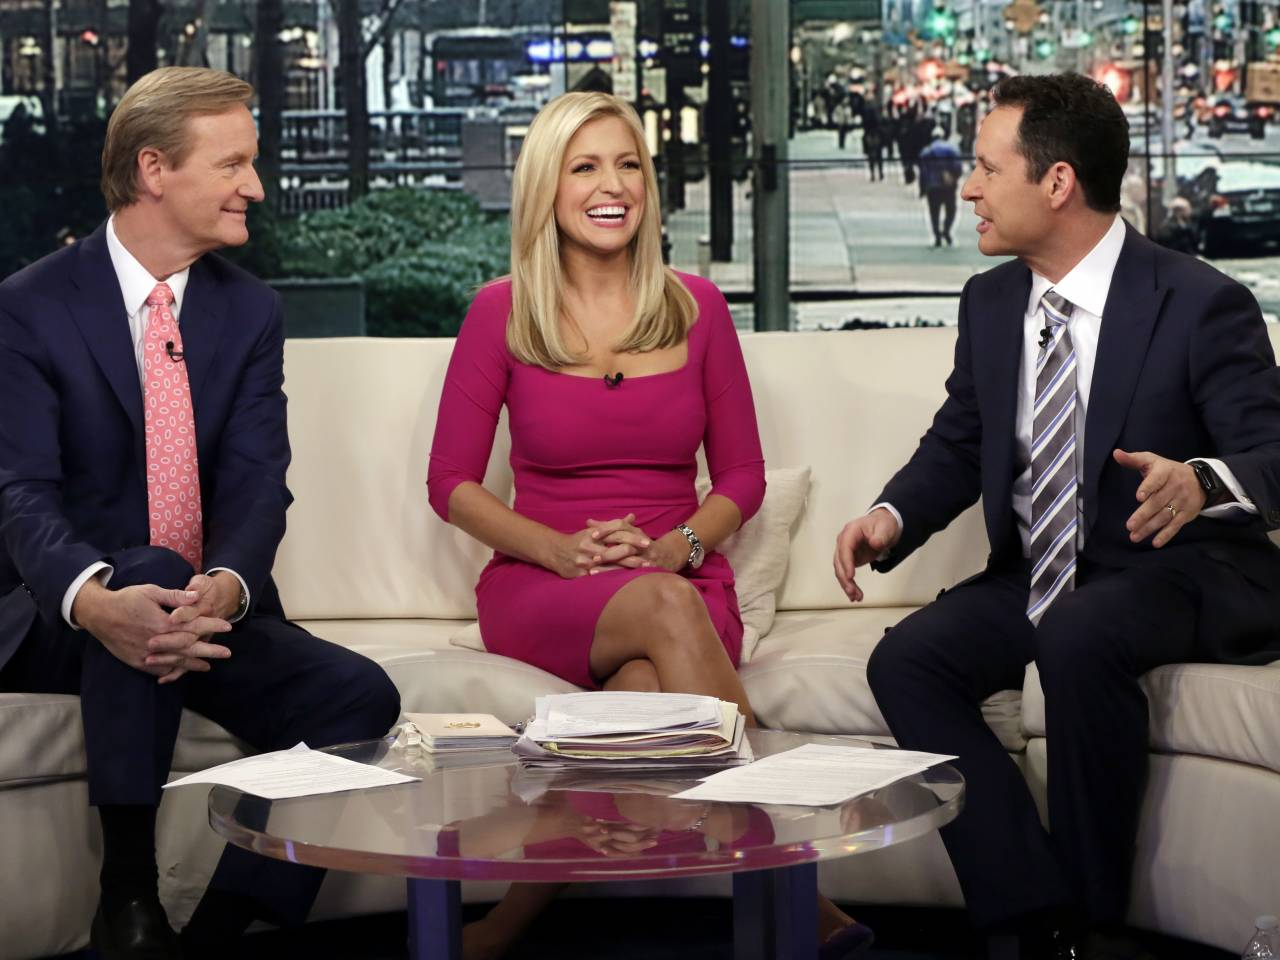 Ivanka Trump Tells 'Fox & Friends': 'I Try to Stay Out of Politics'